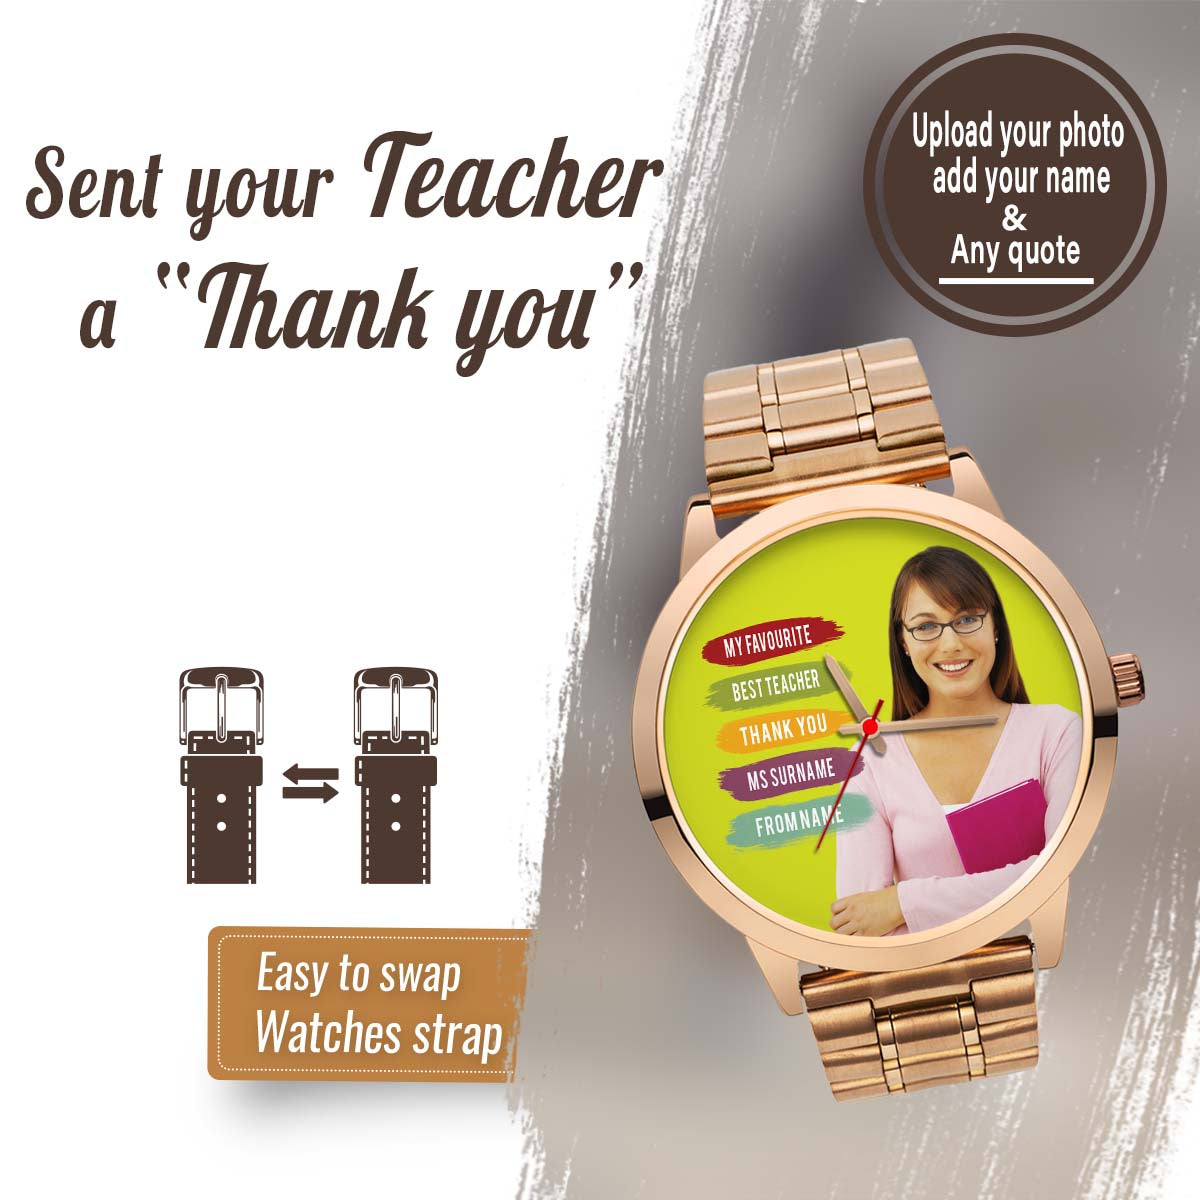 PERSONALIZED WATCH - UPLOAD YOUR BELOVED ONE & ADD YOUR MESSAGE